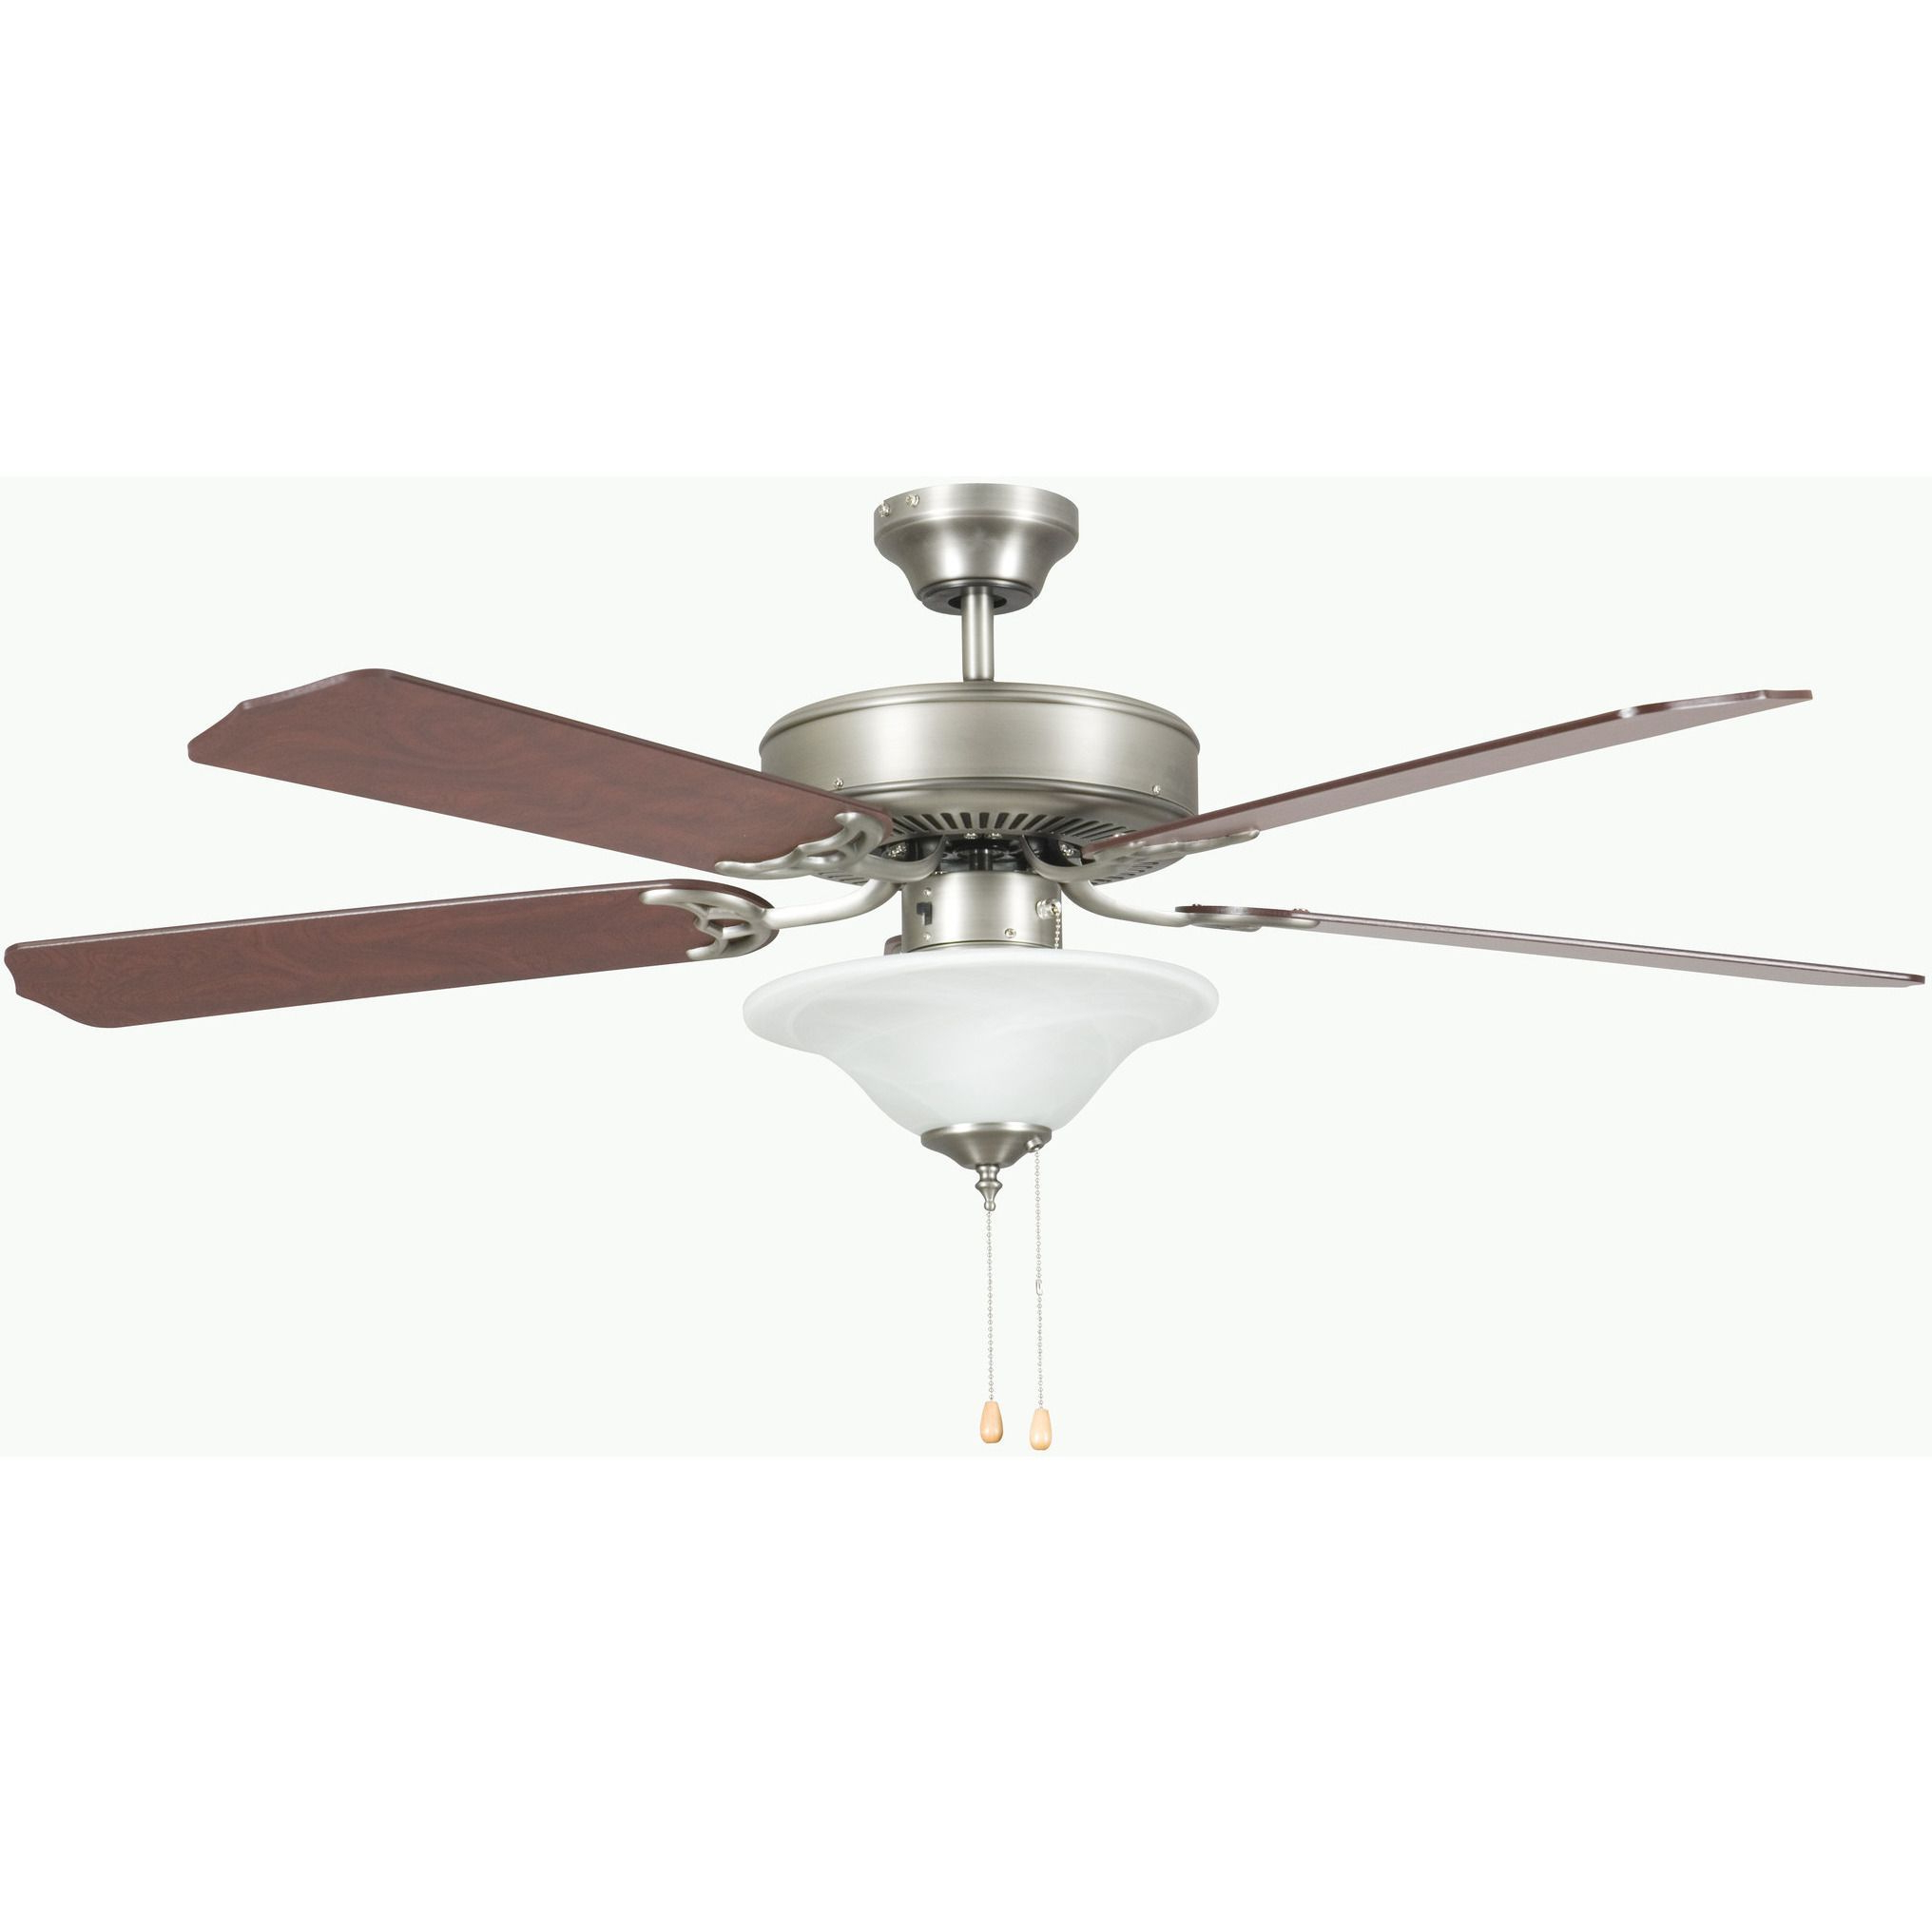 Trendy 52 Inch Heritage Square Fan W/lt Kit – Satin Nickel Energy Intended For Fredericksen 5 Blade Ceiling Fans (View 17 of 20)